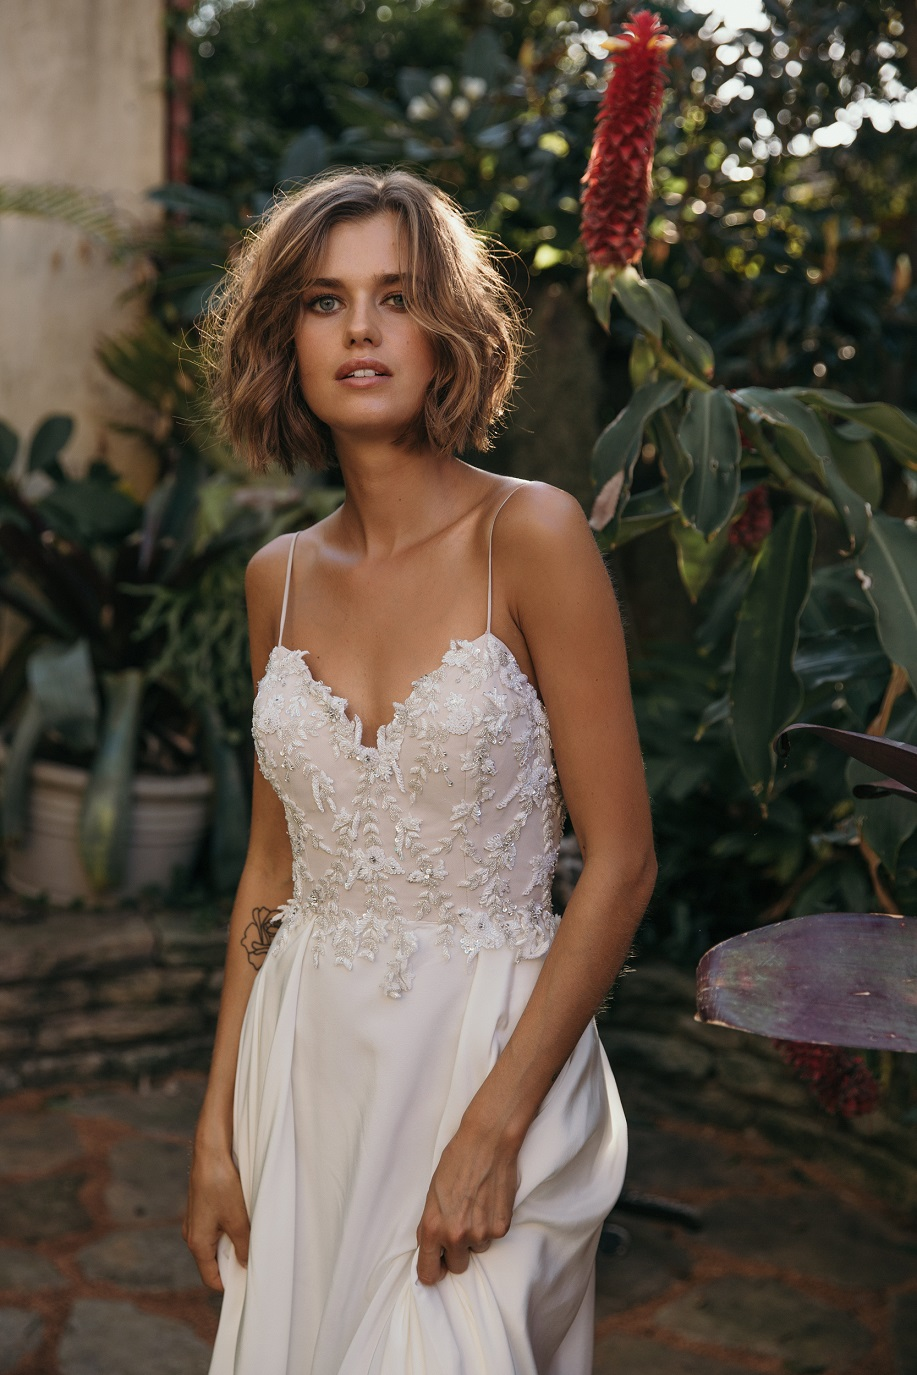 Jennifer Go Bridal featured on LOVE FIND CO. Dress Concierge